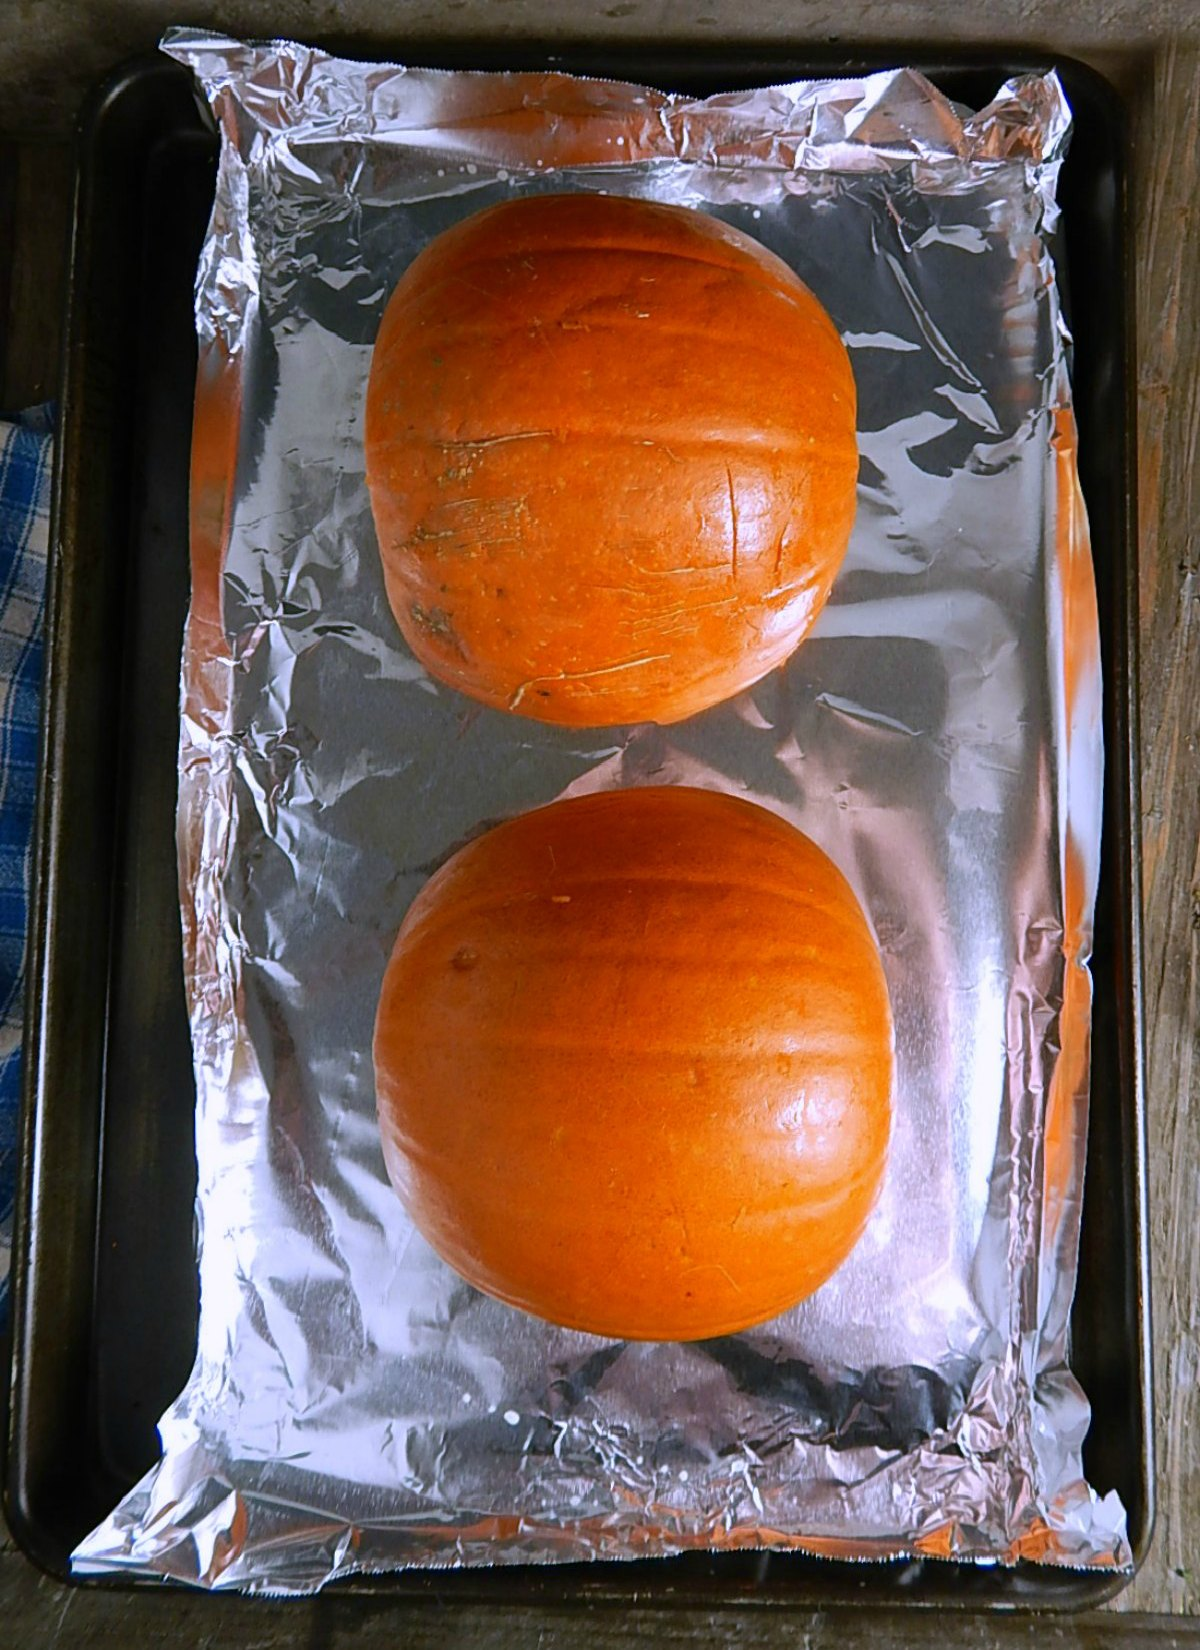 Pumpkins ready to go in oven for Easy Homemade Pumpkin Puree